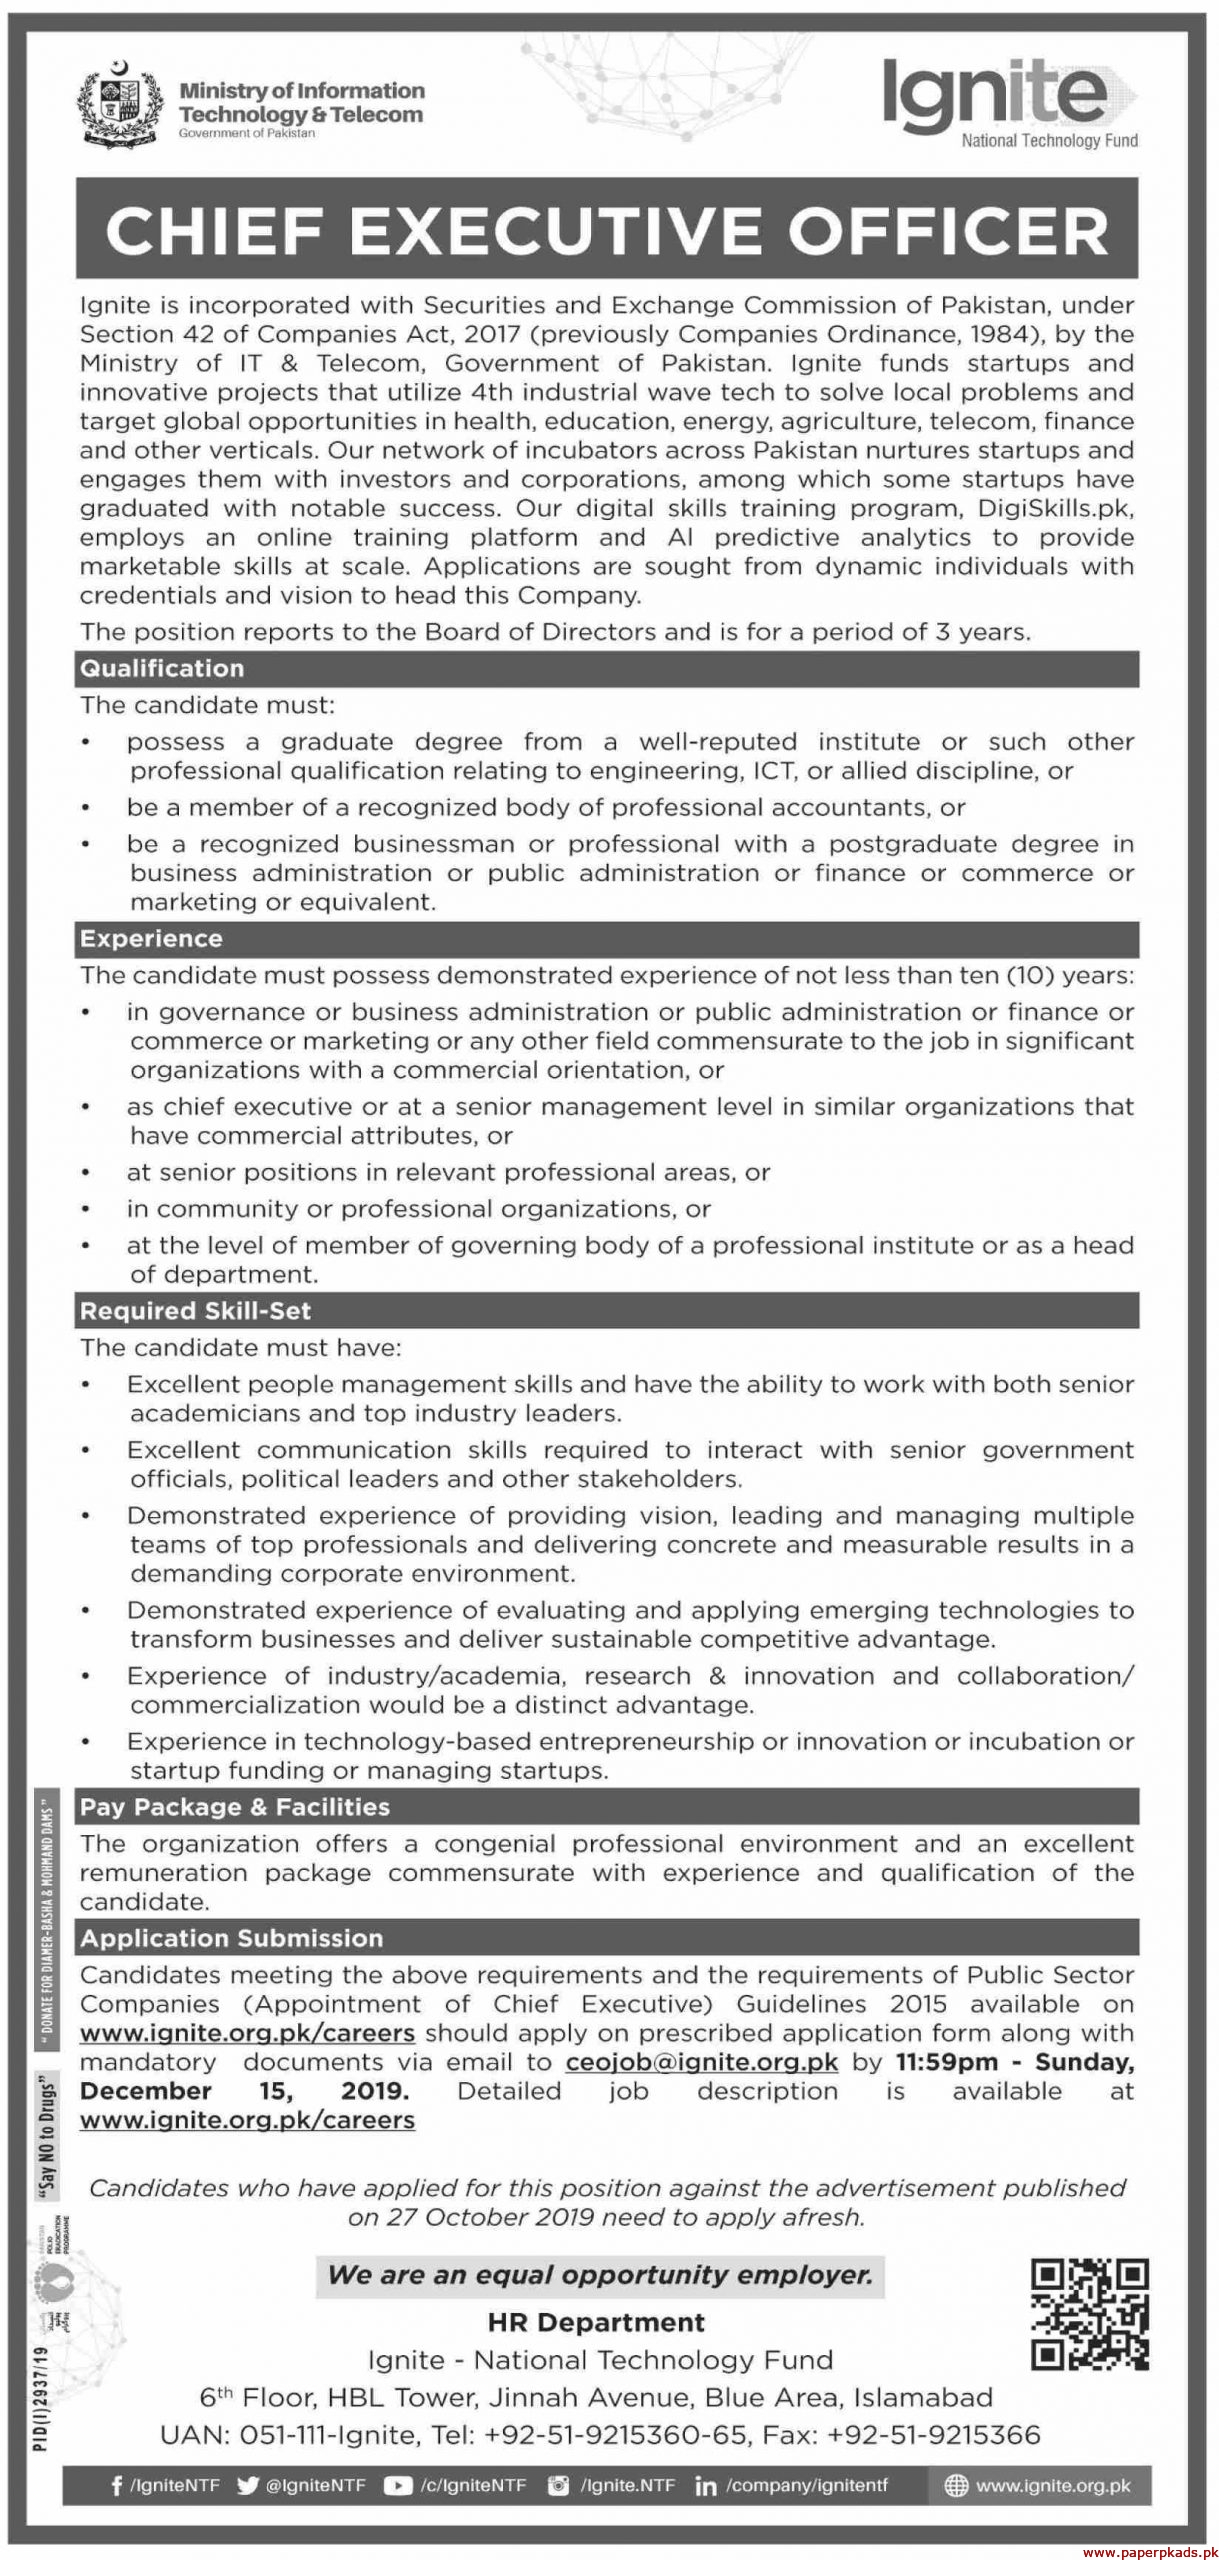 Government of Pakistan Ministry of Information Technology & Telecom Jobs 2019 Latest